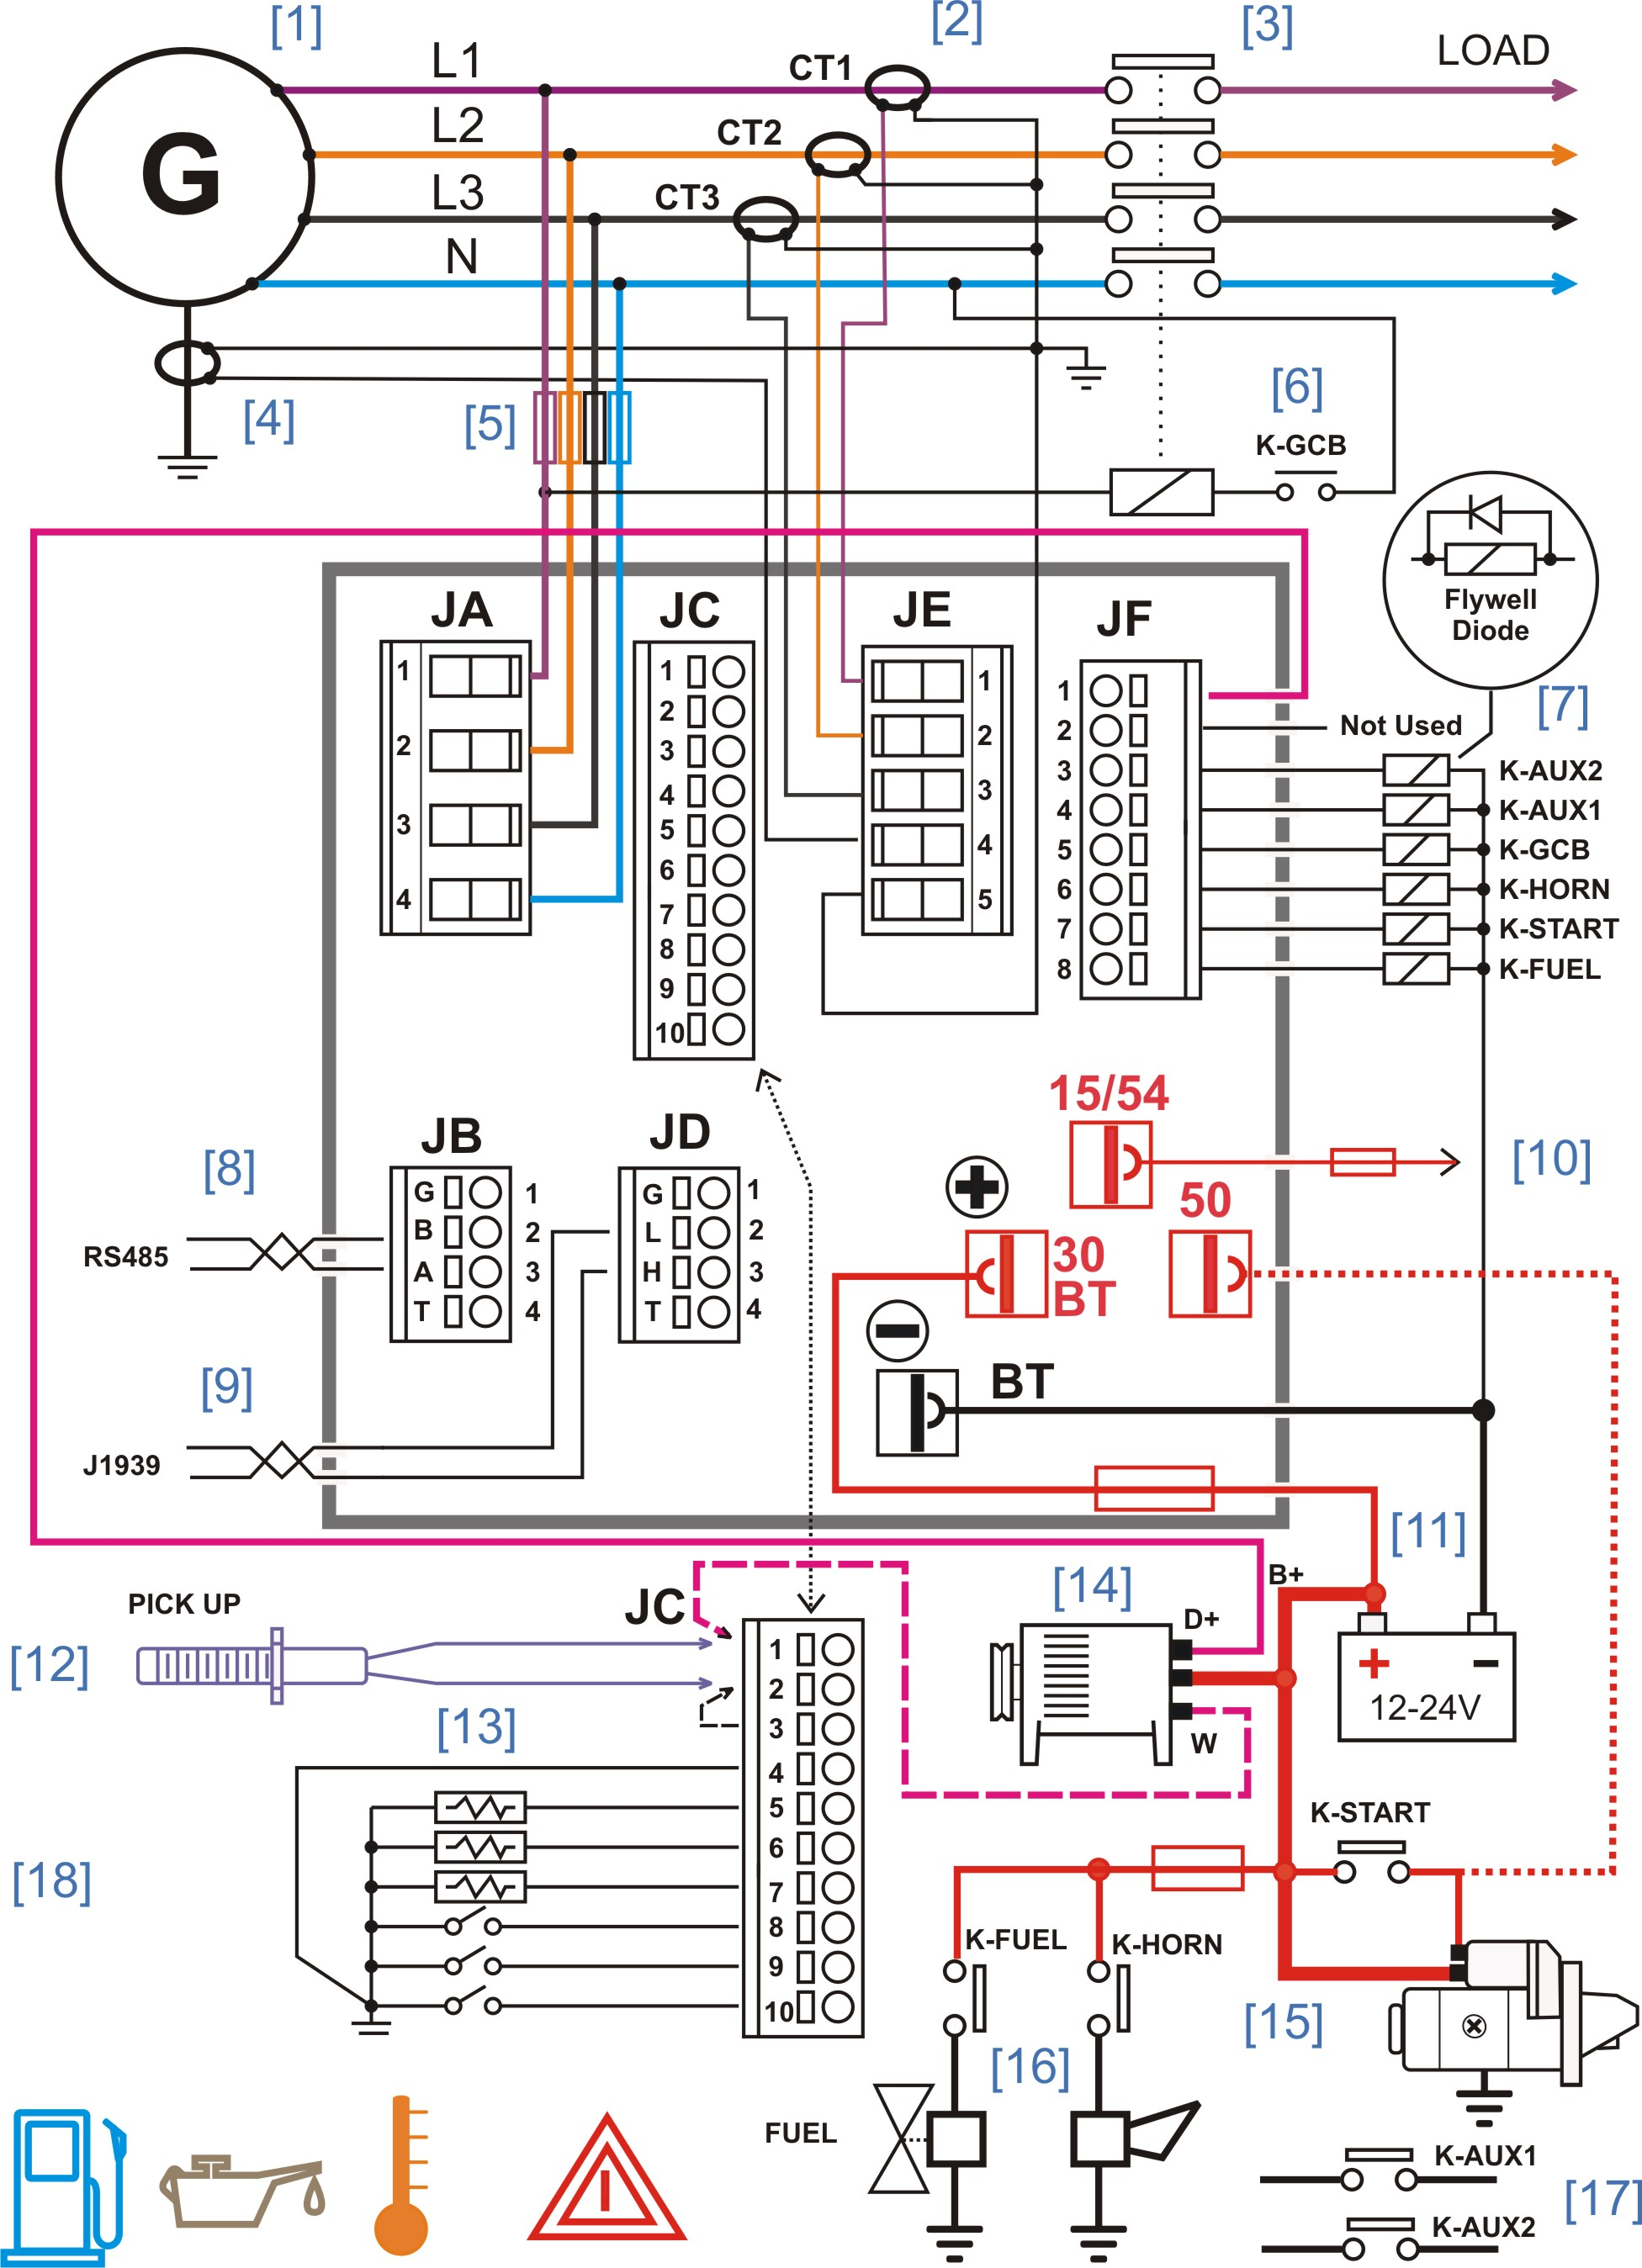 generator controller wiring diagram genset controller rh bernini design com control wiring diagram of apfc panel control wiring diagram of apfc panel